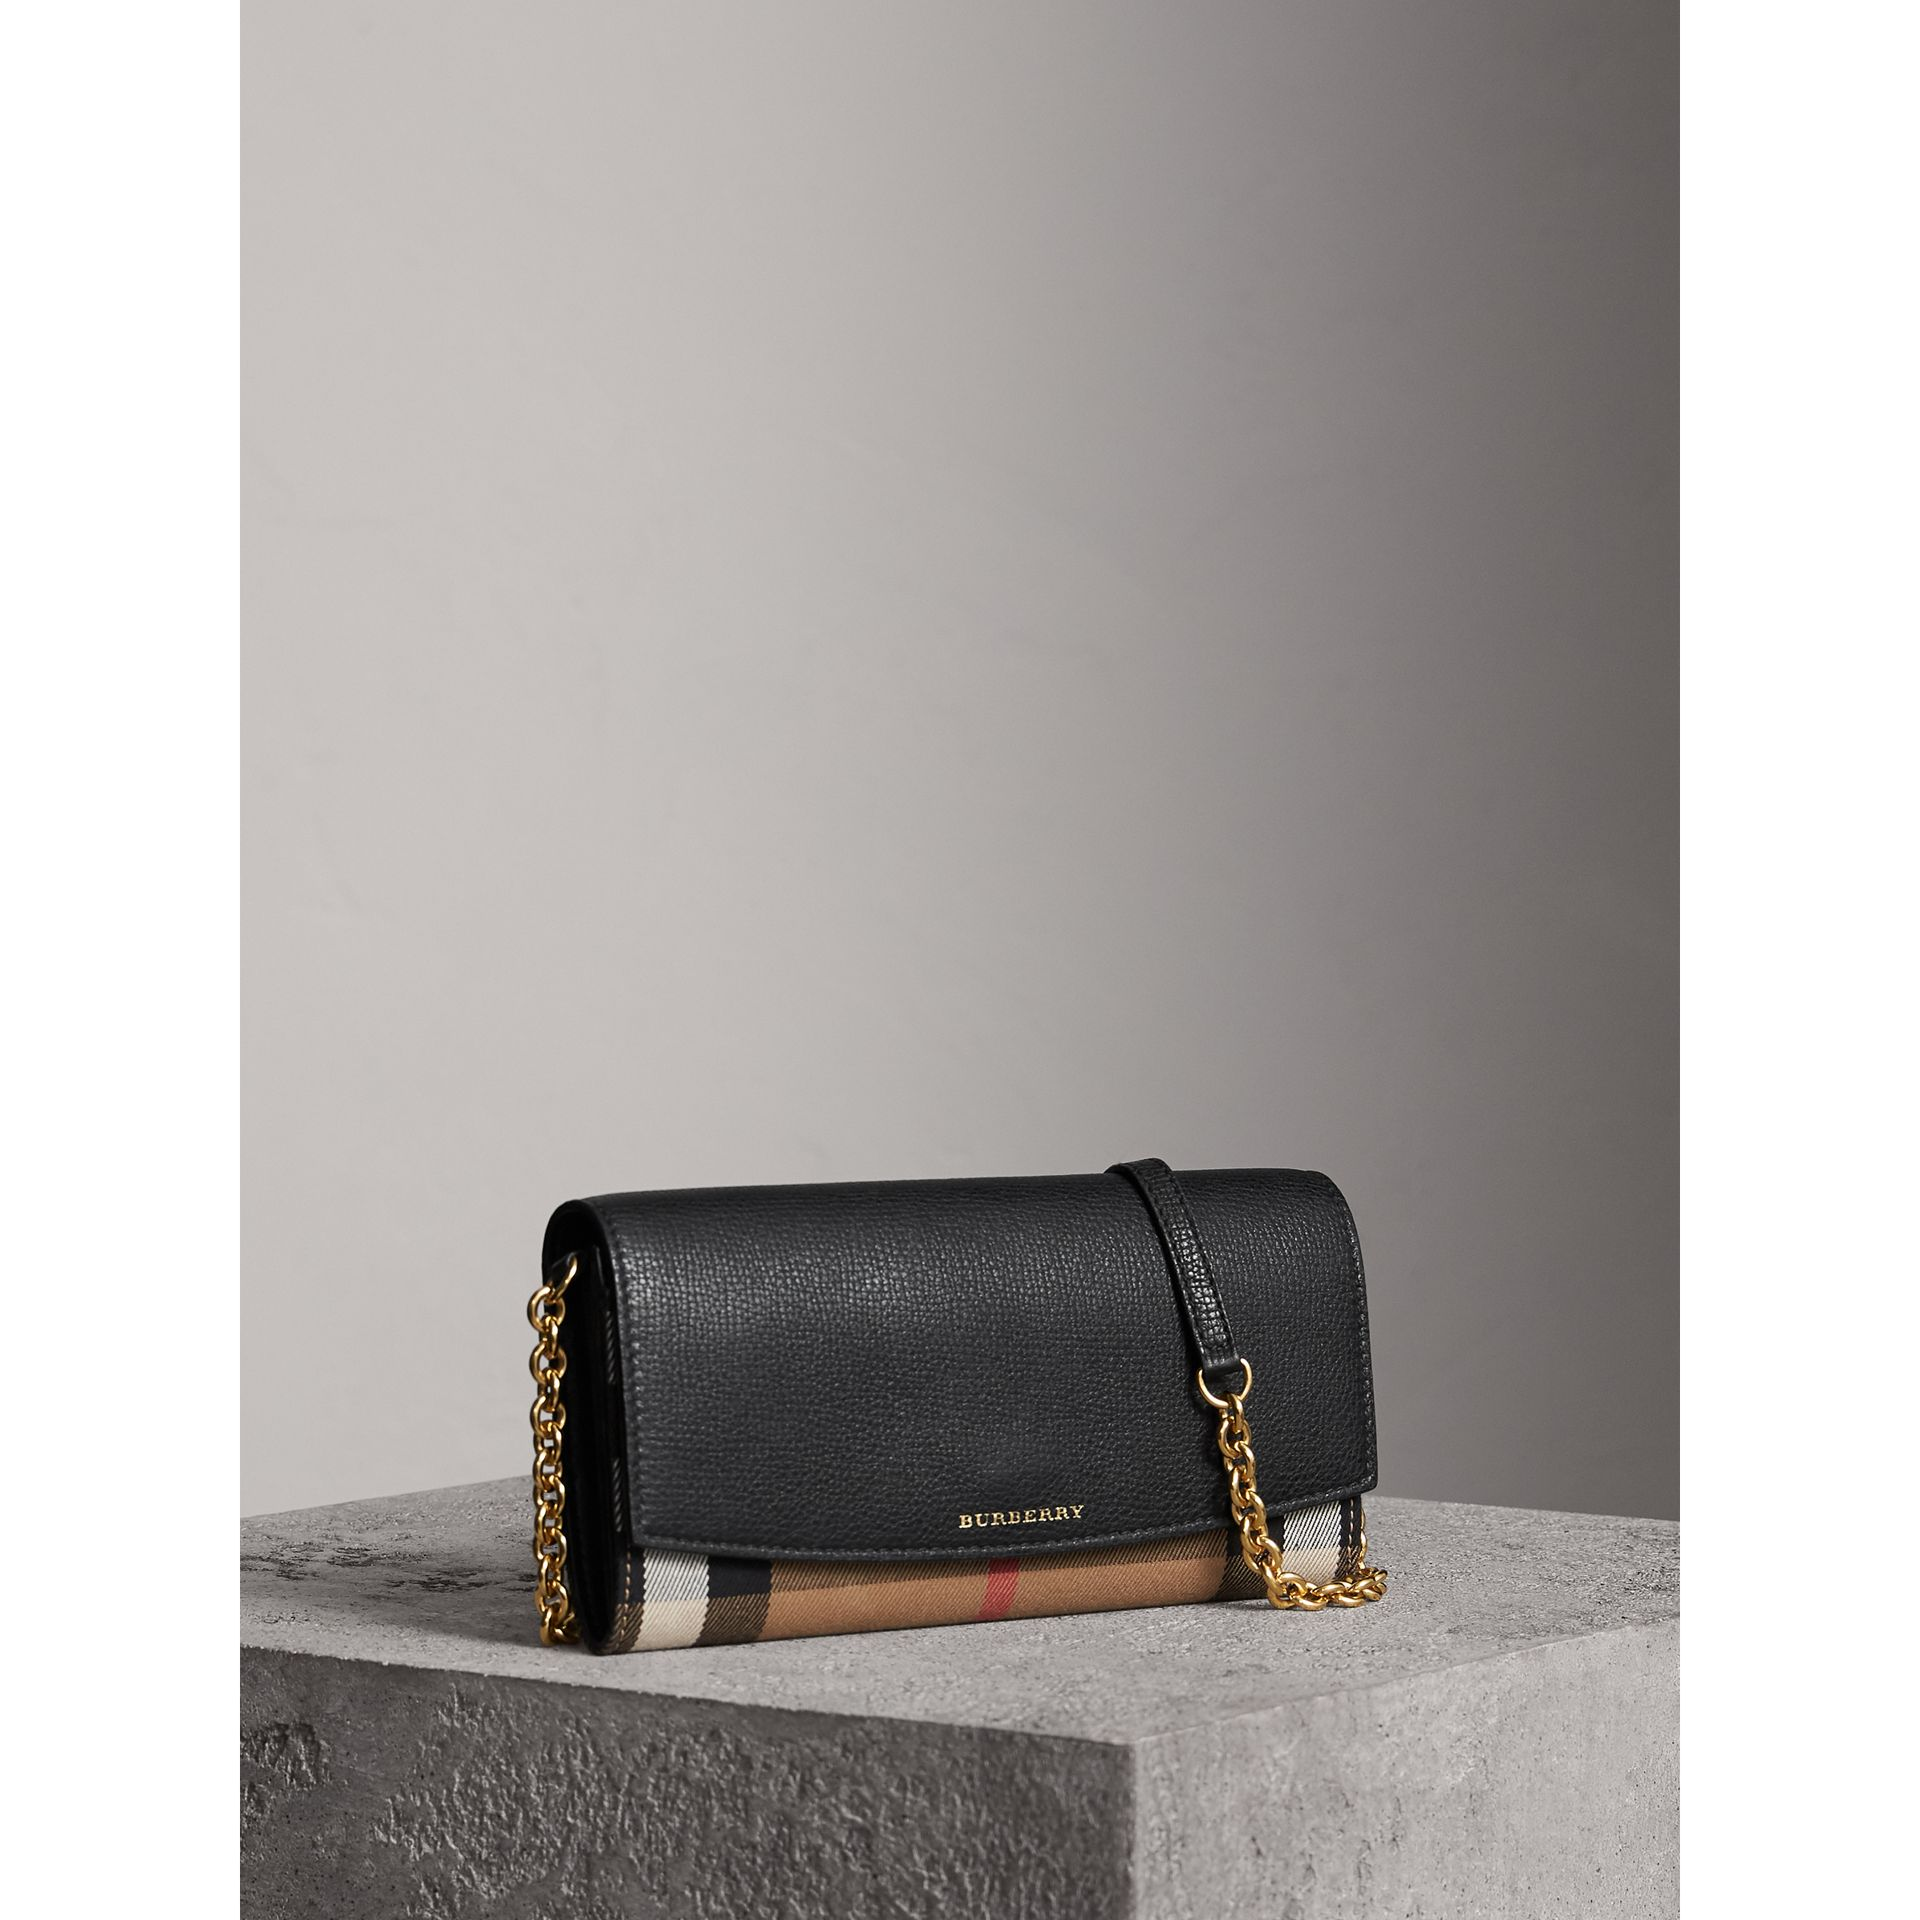 House Check and Leather Wallet with Chain in Black - Women | Burberry Australia - gallery image 0